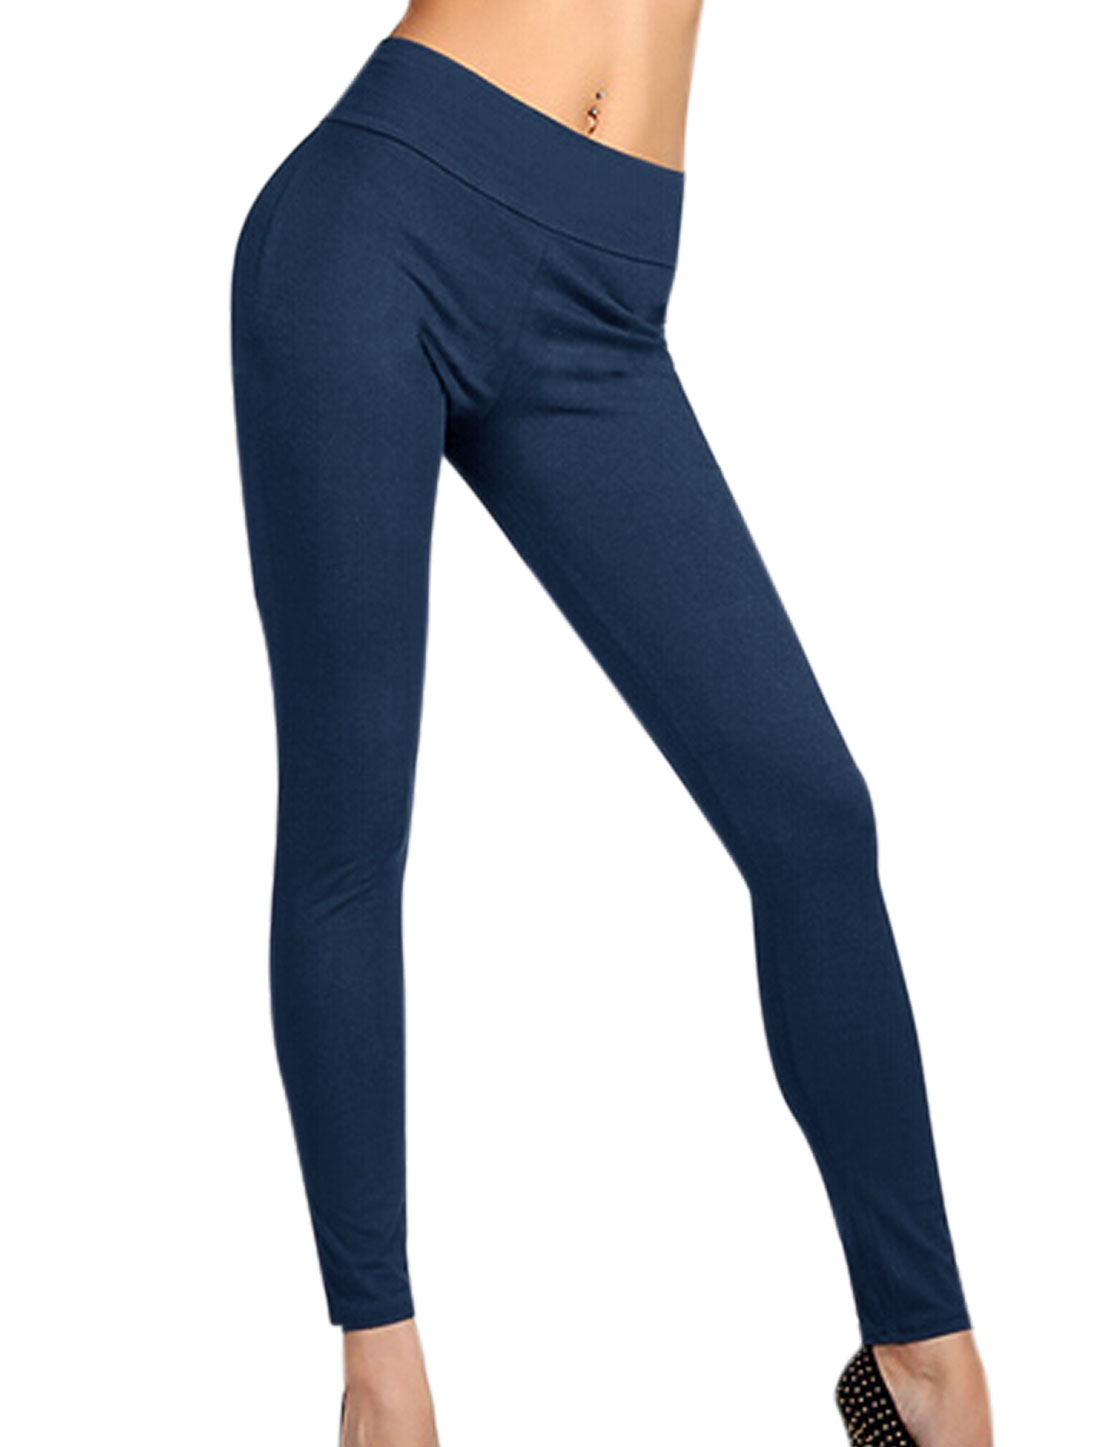 Laides Natual Waist Zipper Back Fashion Leggings Navy Blue XL